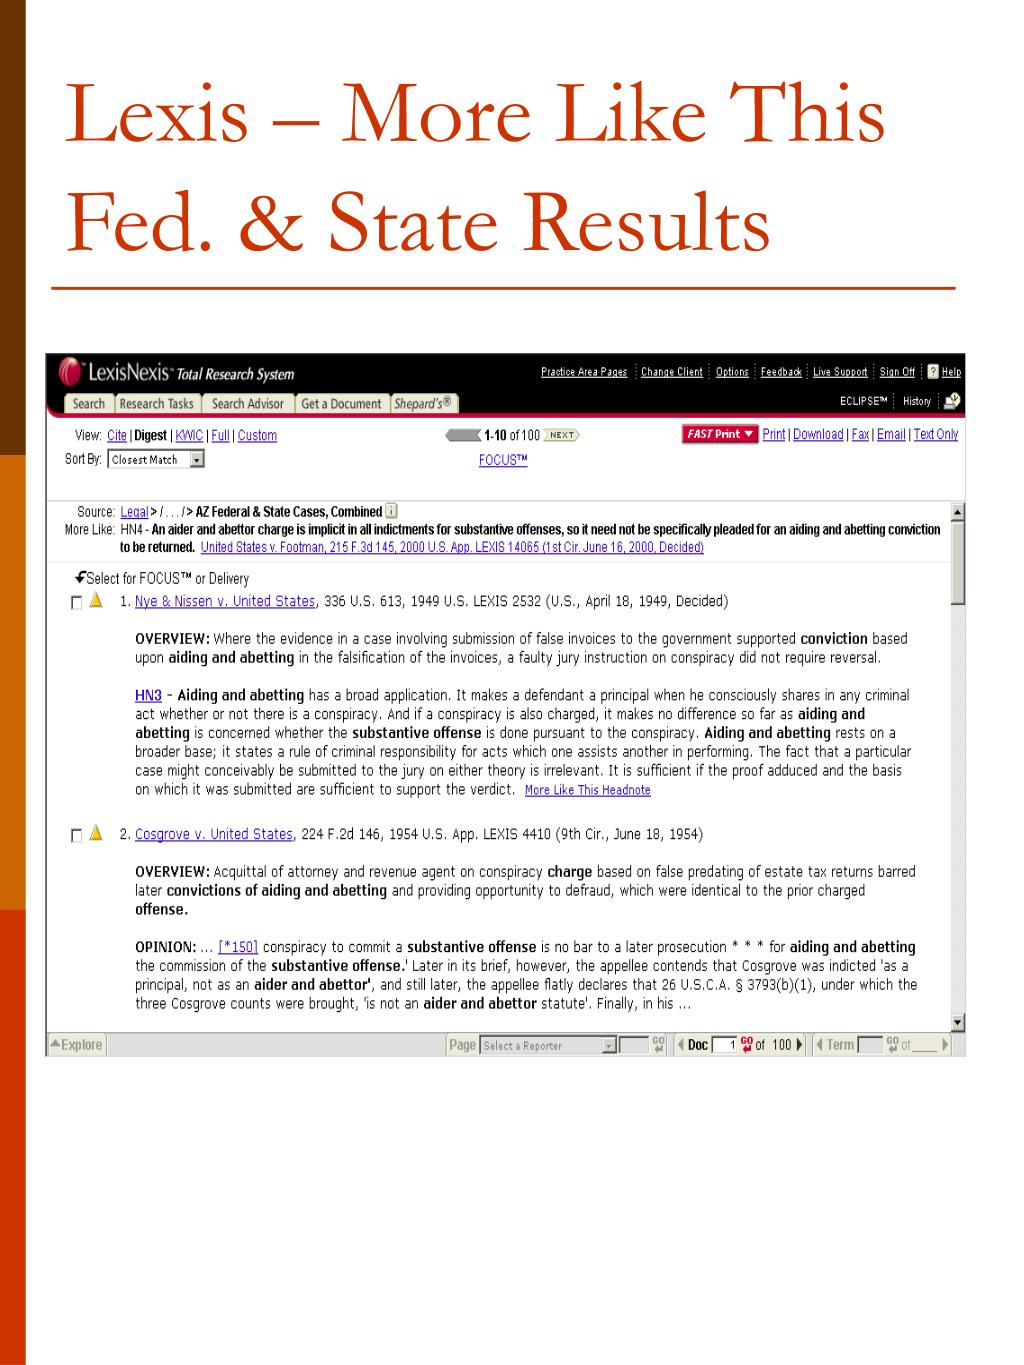 Lexis – More Like This Fed. & State Results